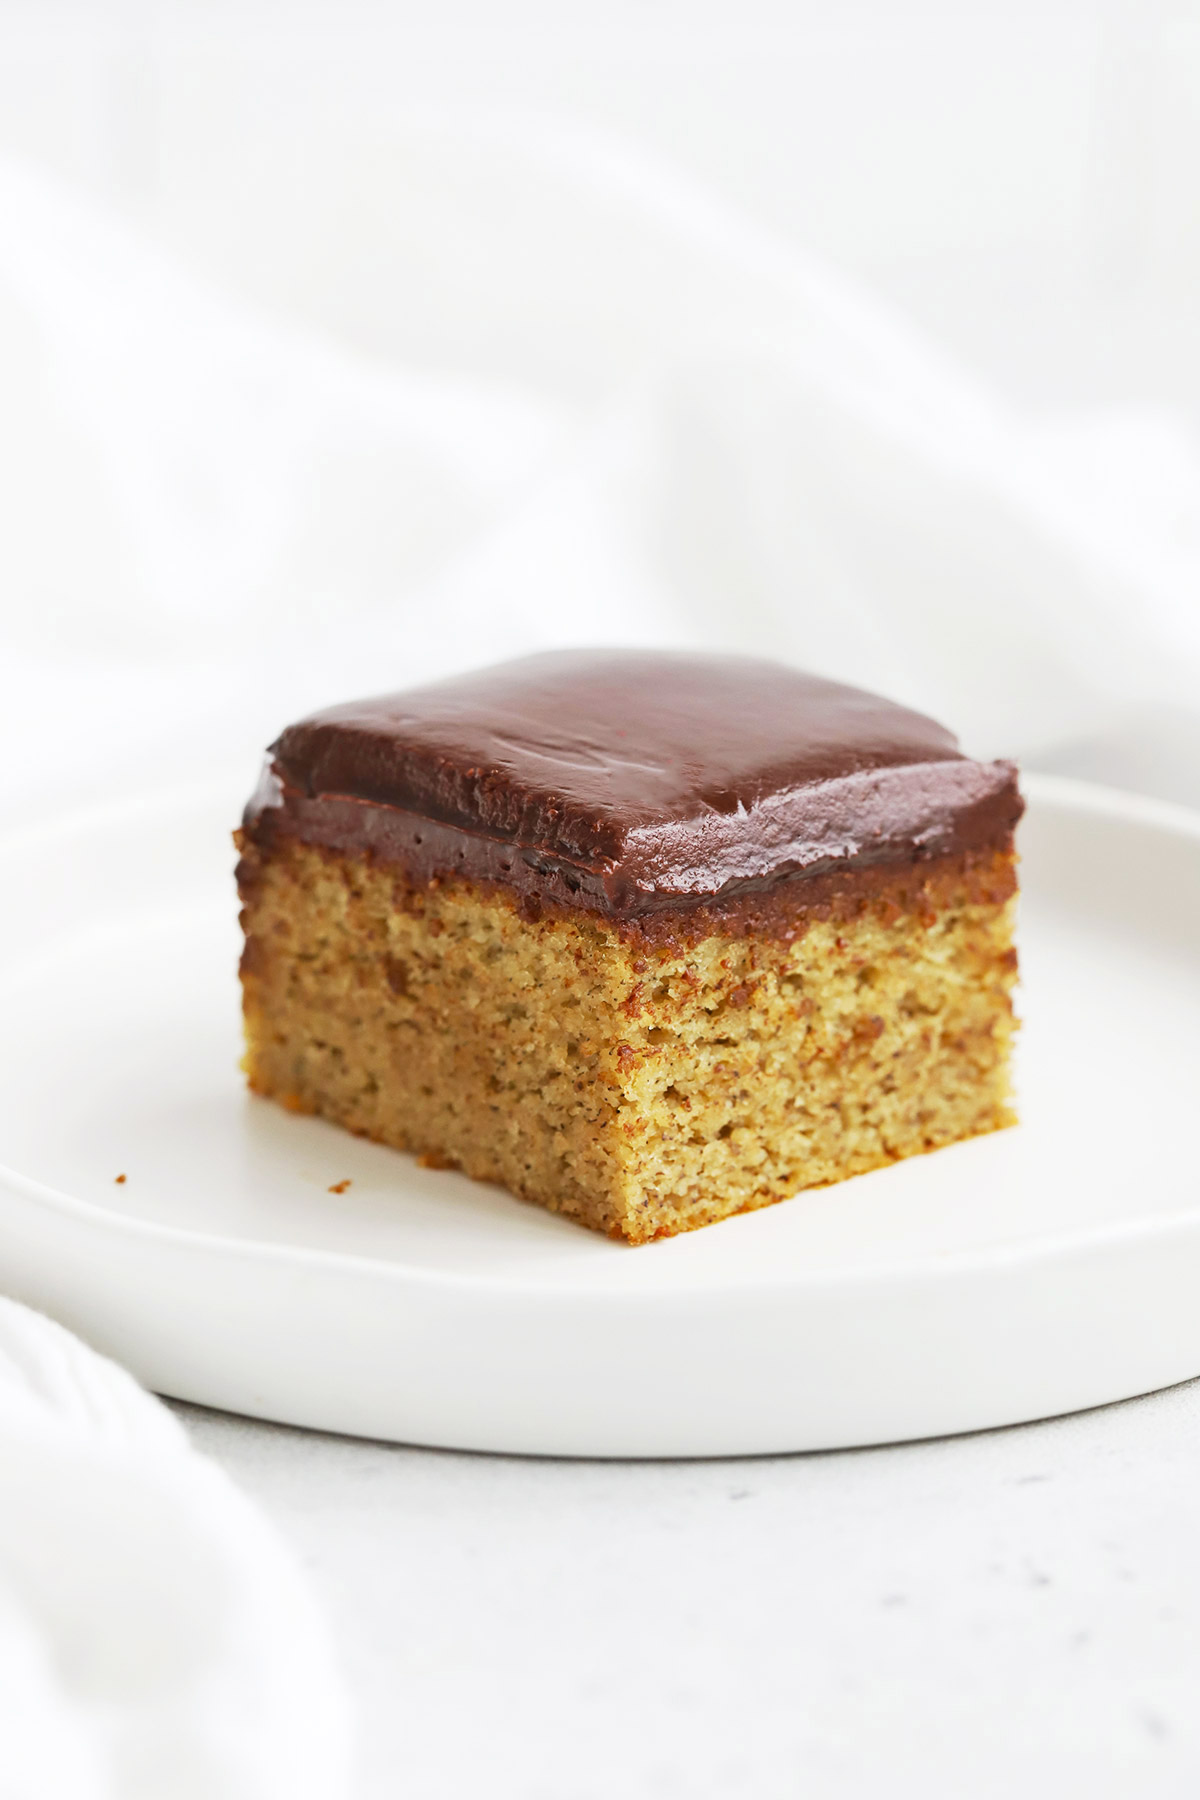 Front view of a slice of almond flour banana cake with chocolate ganache on a white plate